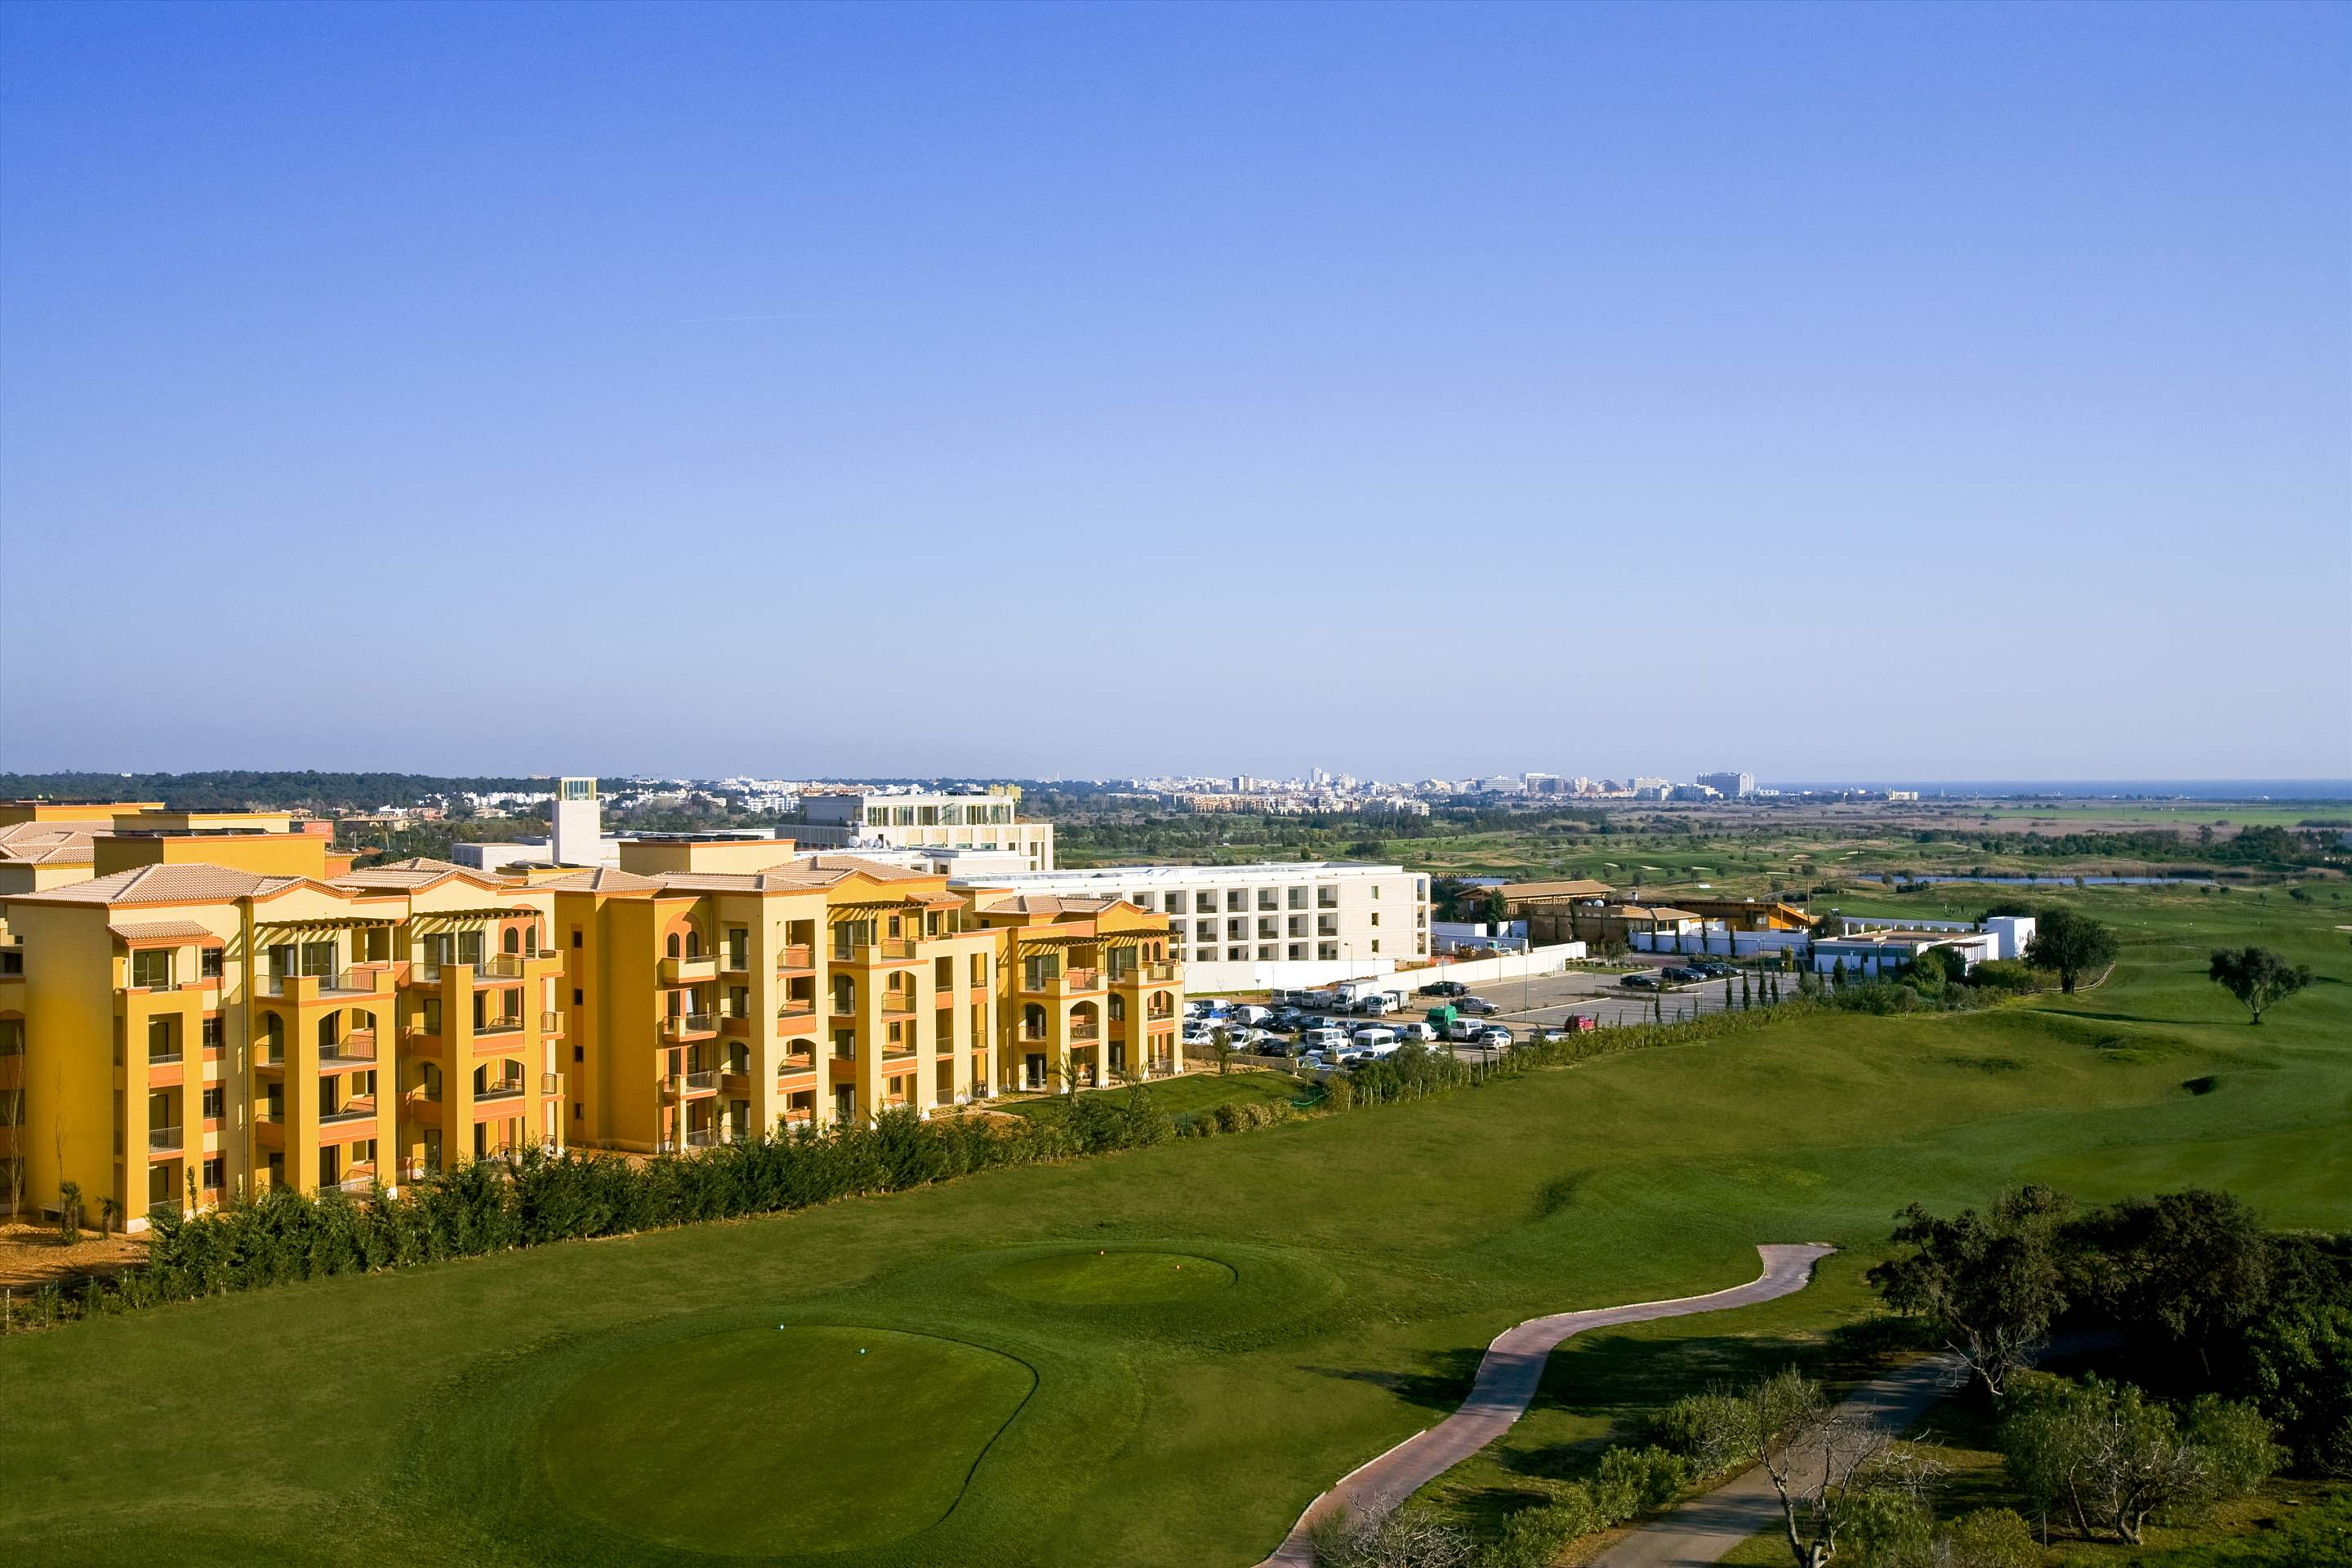 The Residences at Victoria by TIVOLI 3 Bed Apt , Deluxe, Golf or Pool View, 3 bedroom apartment in The Residences at Victoria by TIVOLI, Algarve Photo #1